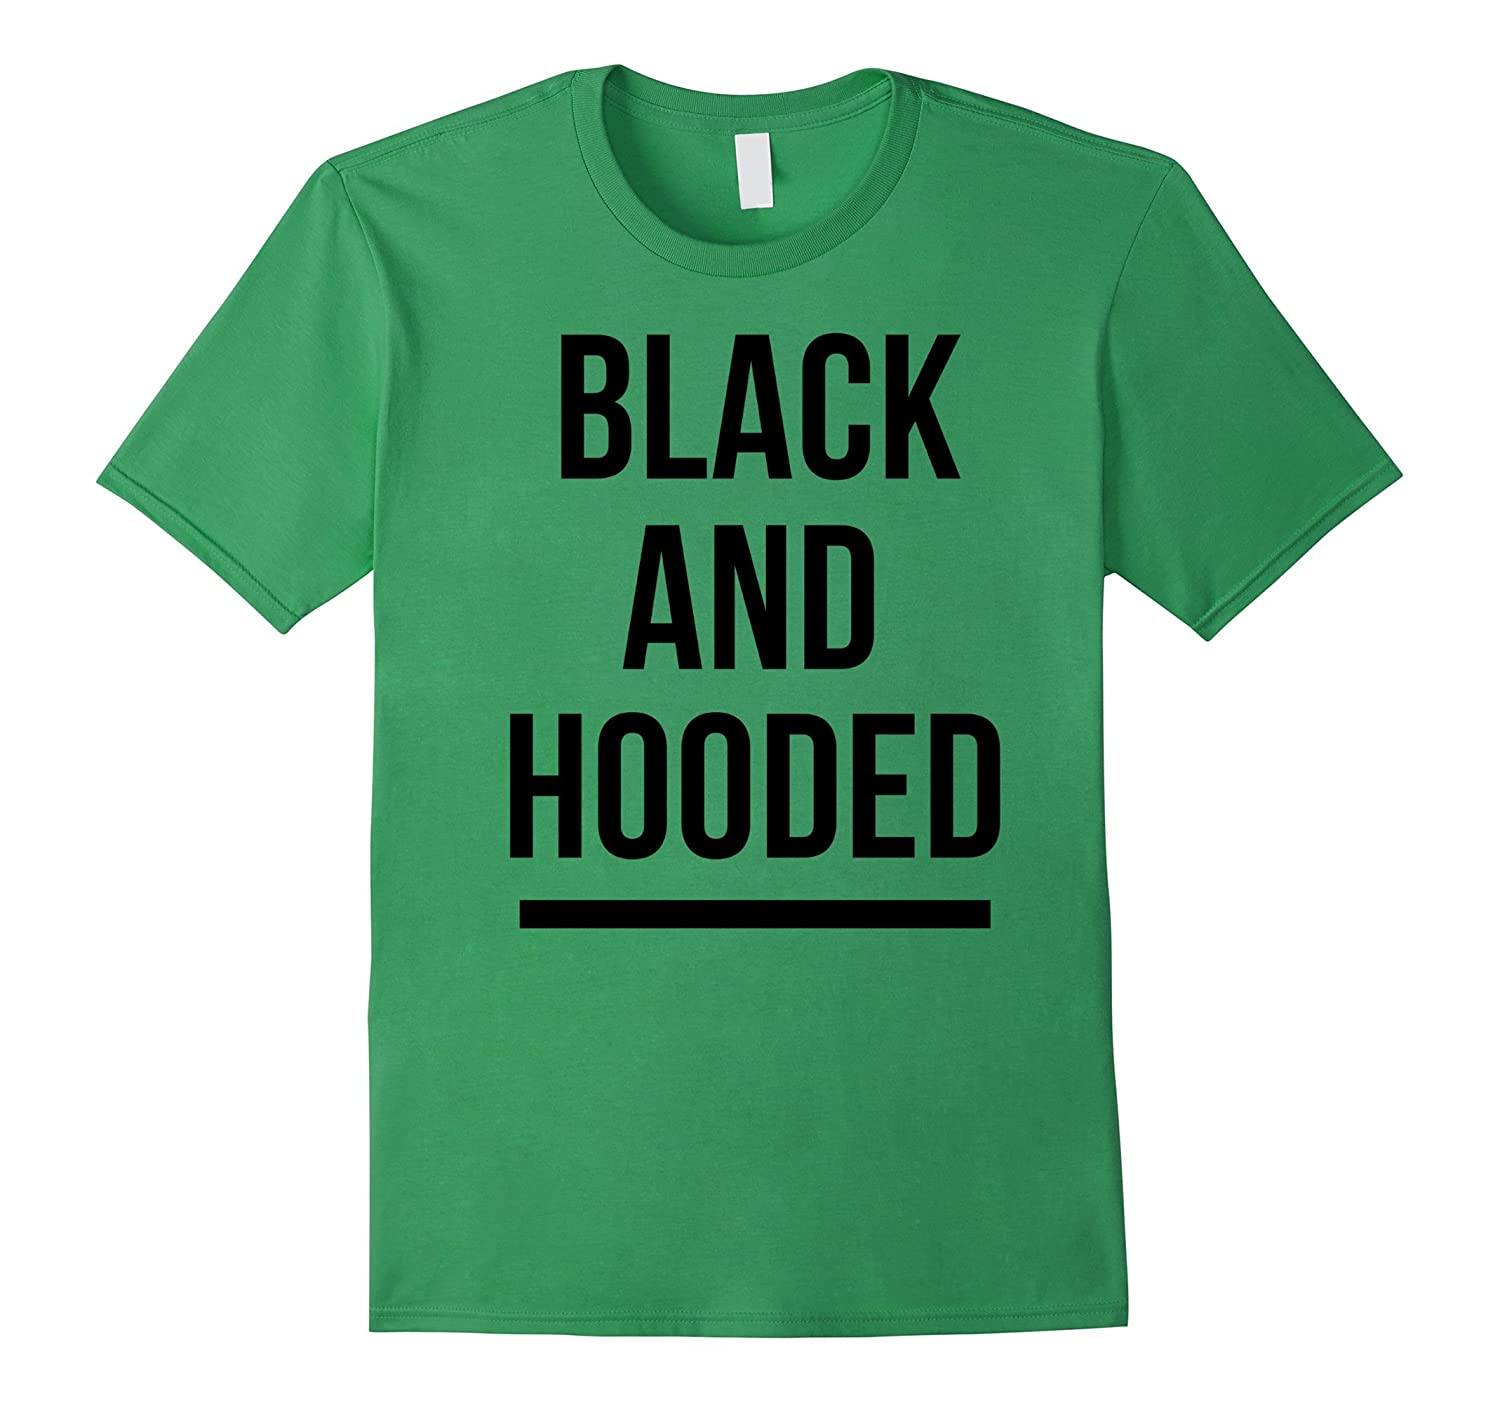 Black and Hooded African American T-shirt for Graduation